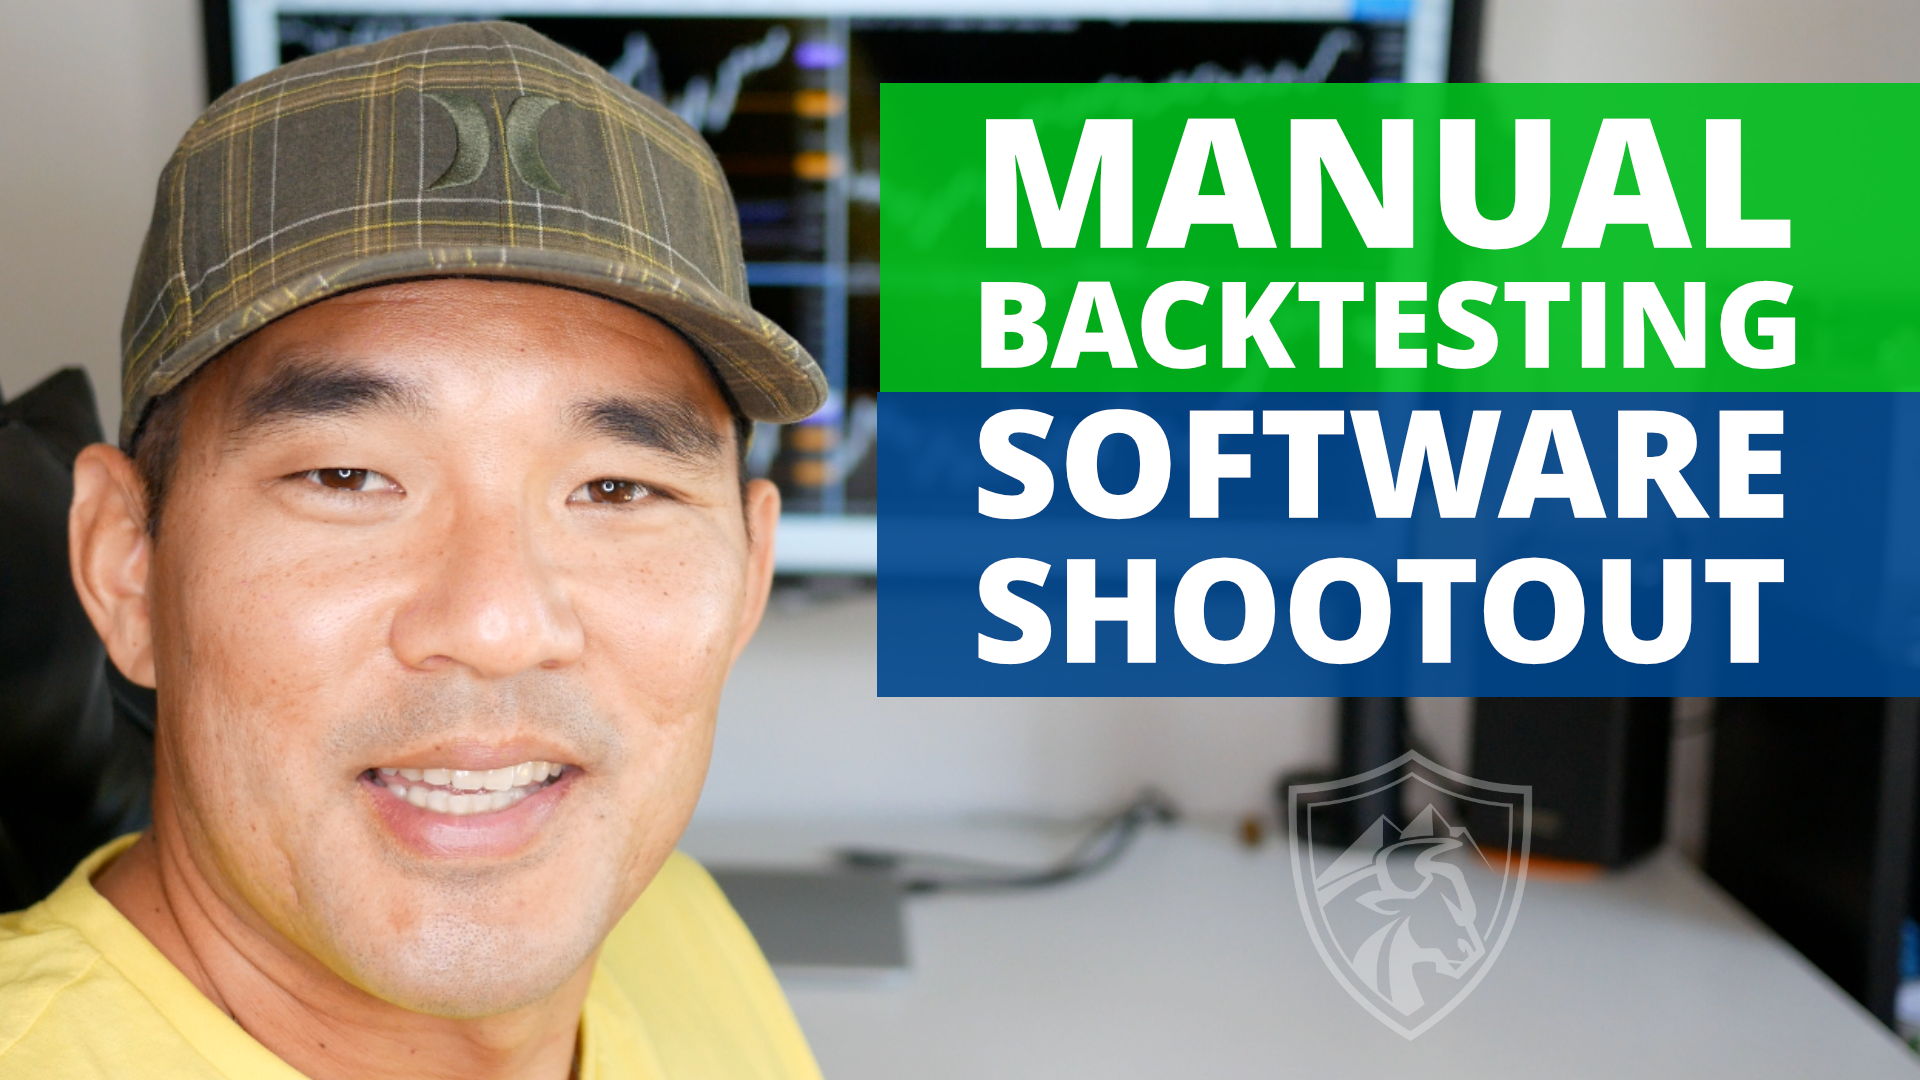 Best manual backtesting software shootout